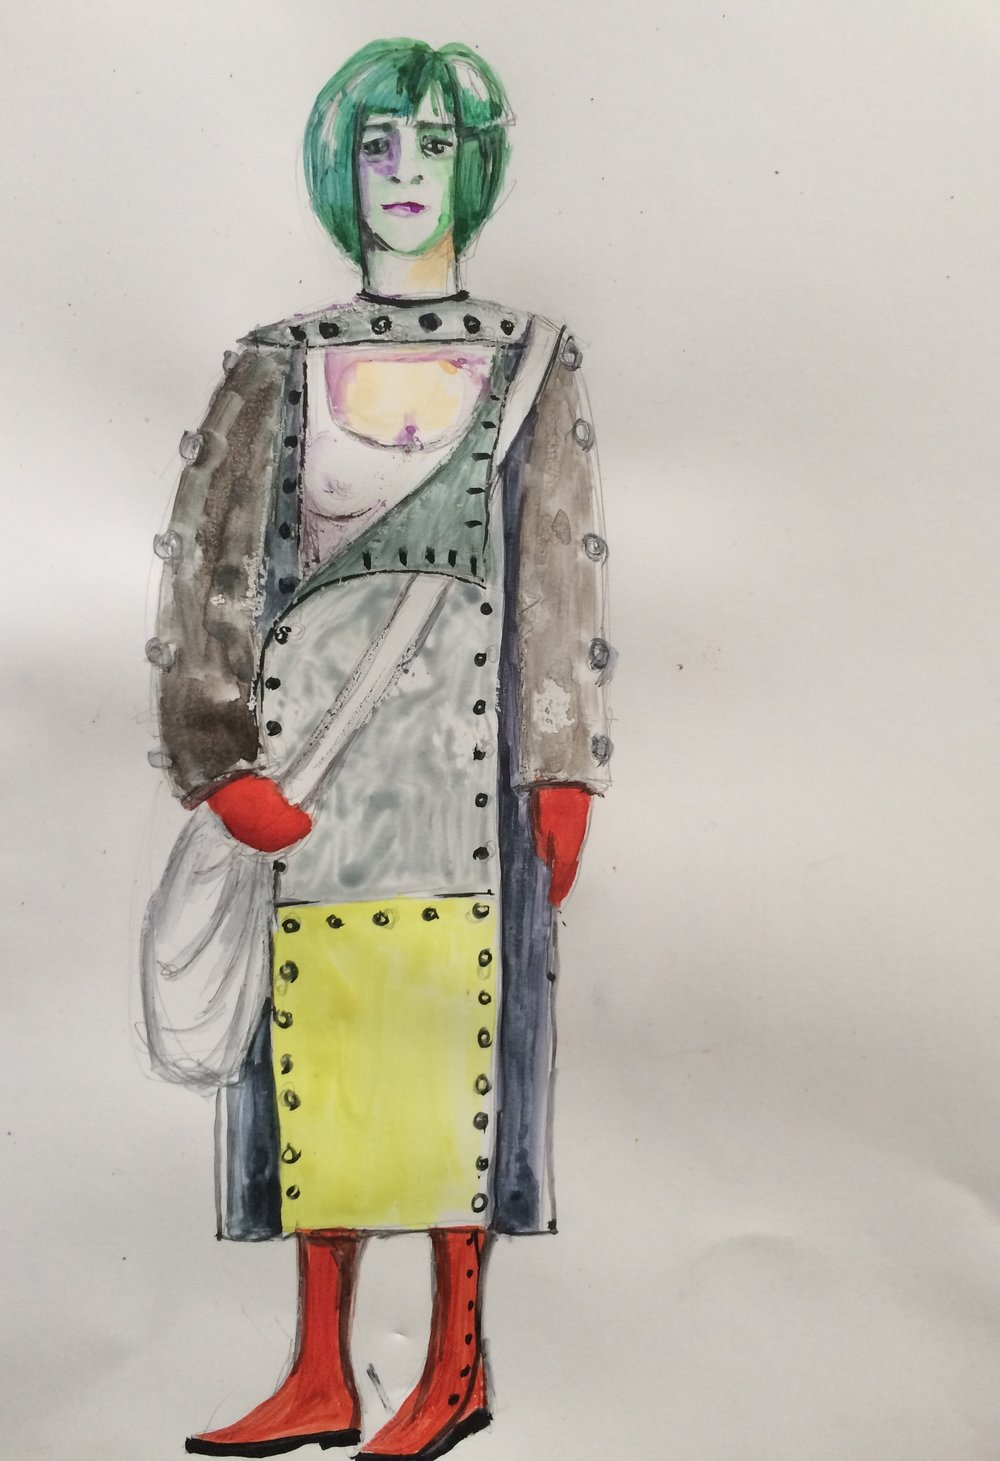 Jane Doe, act II. Costume sketch by Olga Maslova